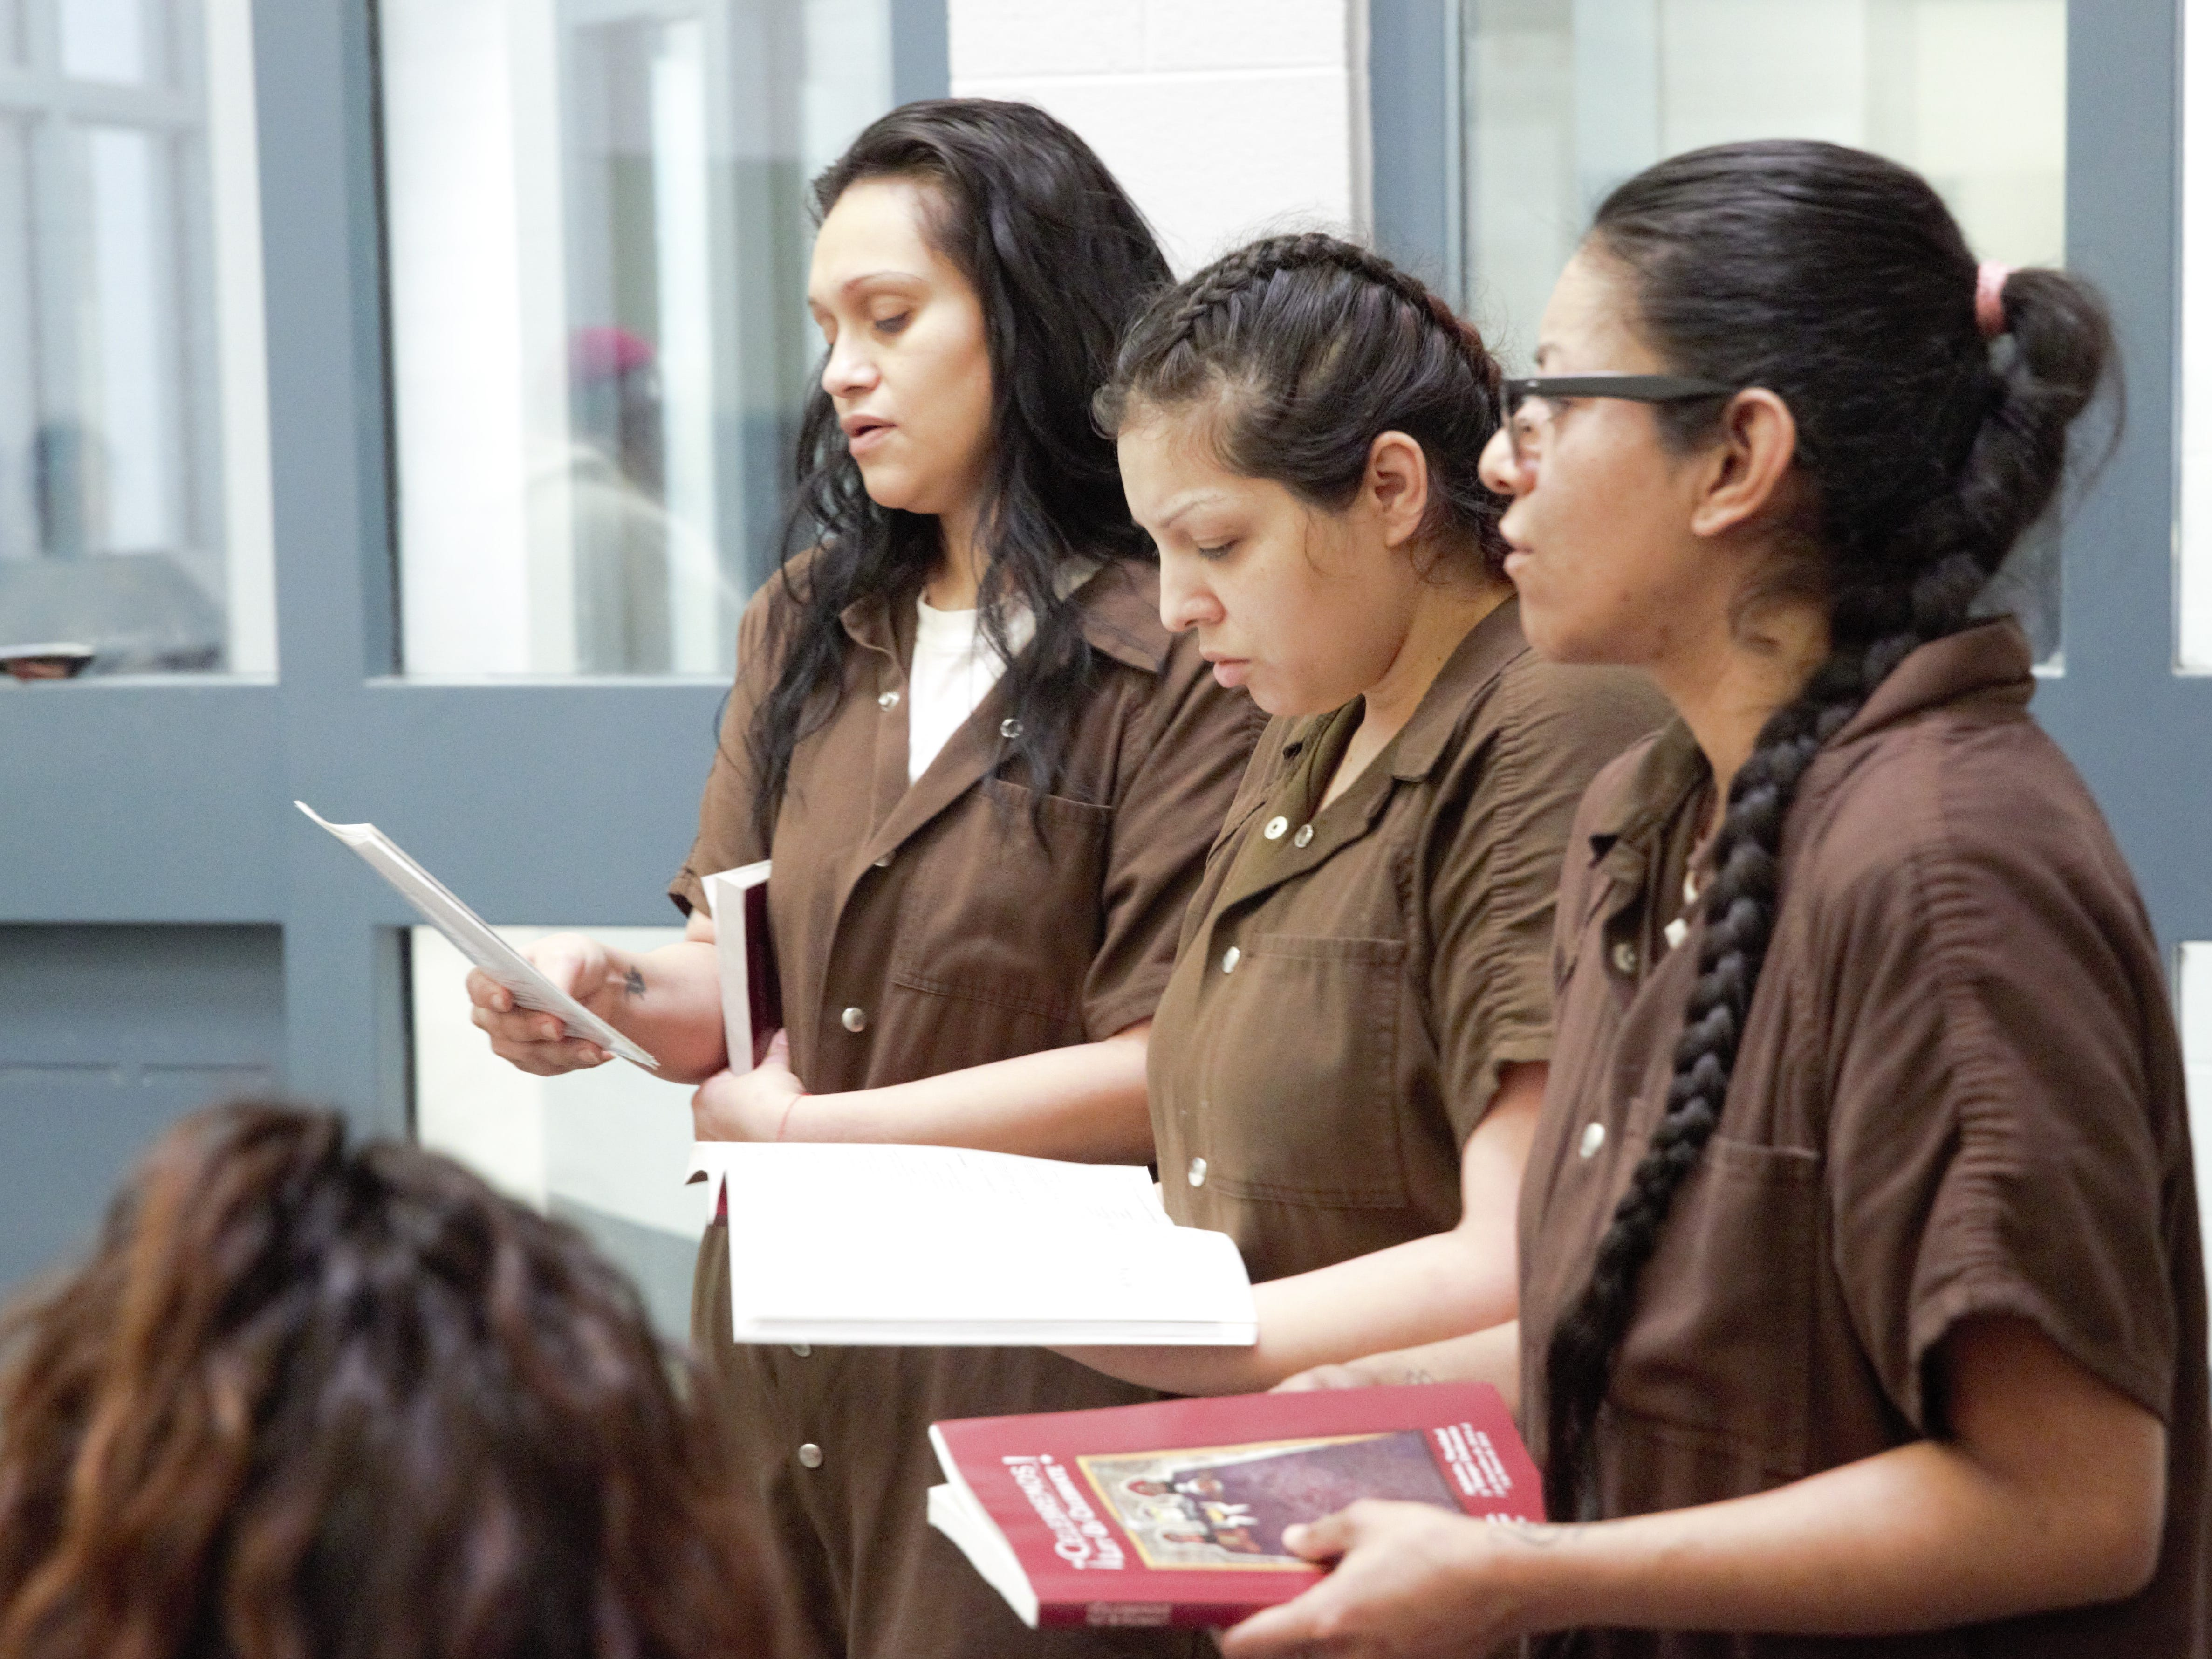 Inmates participate in a Christmas Day service on Tuesday, Dec. 25, 2018 at the Doña Ana County Detention Center, 1850 Copper Loop, Las Cruces.